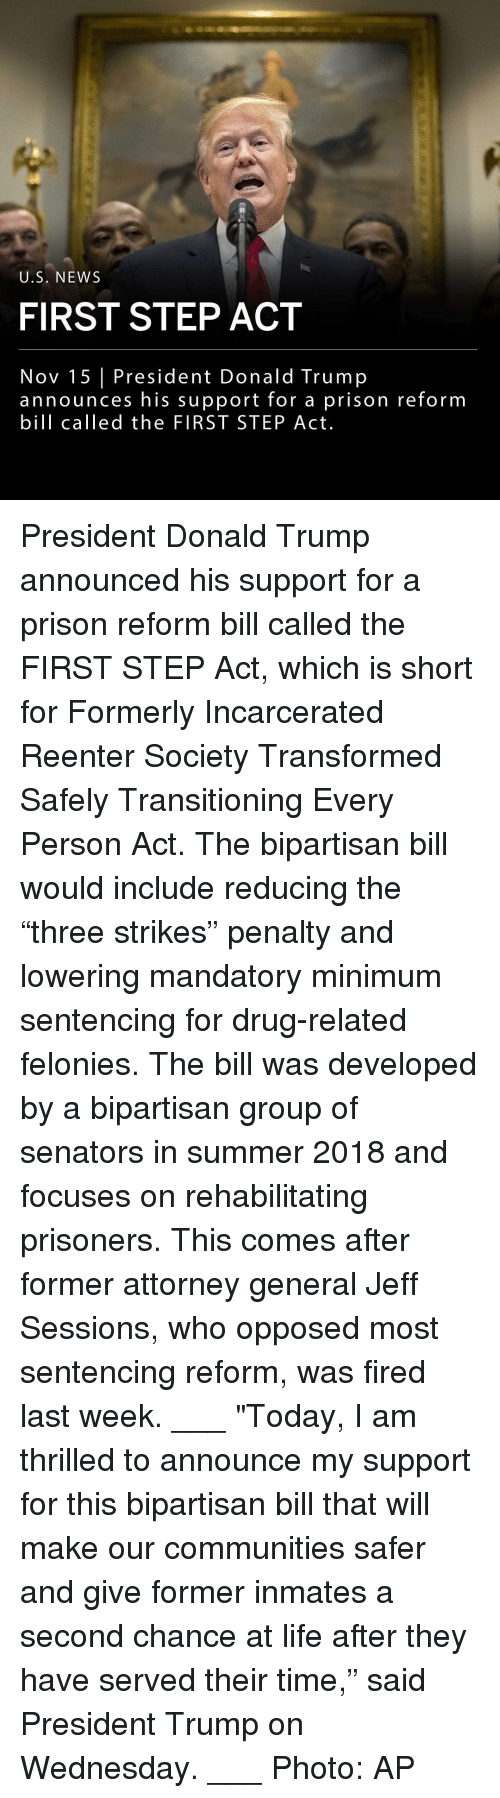 "attorney general: U.S. NEWS  FIRST STEP ACT  Nov 15 President Donald Trump  announces his support for a prison reform  bill called the FIRST STEP Act. President Donald Trump announced his support for a prison reform bill called the FIRST STEP Act, which is short for Formerly Incarcerated Reenter Society Transformed Safely Transitioning Every Person Act. The bipartisan bill would include reducing the ""three strikes"" penalty and lowering mandatory minimum sentencing for drug-related felonies. The bill was developed by a bipartisan group of senators in summer 2018 and focuses on rehabilitating prisoners. This comes after former attorney general Jeff Sessions, who opposed most sentencing reform, was fired last week. ___ ""Today, I am thrilled to announce my support for this bipartisan bill that will make our communities safer and give former inmates a second chance at life after they have served their time,"" said President Trump on Wednesday. ___ Photo: AP"